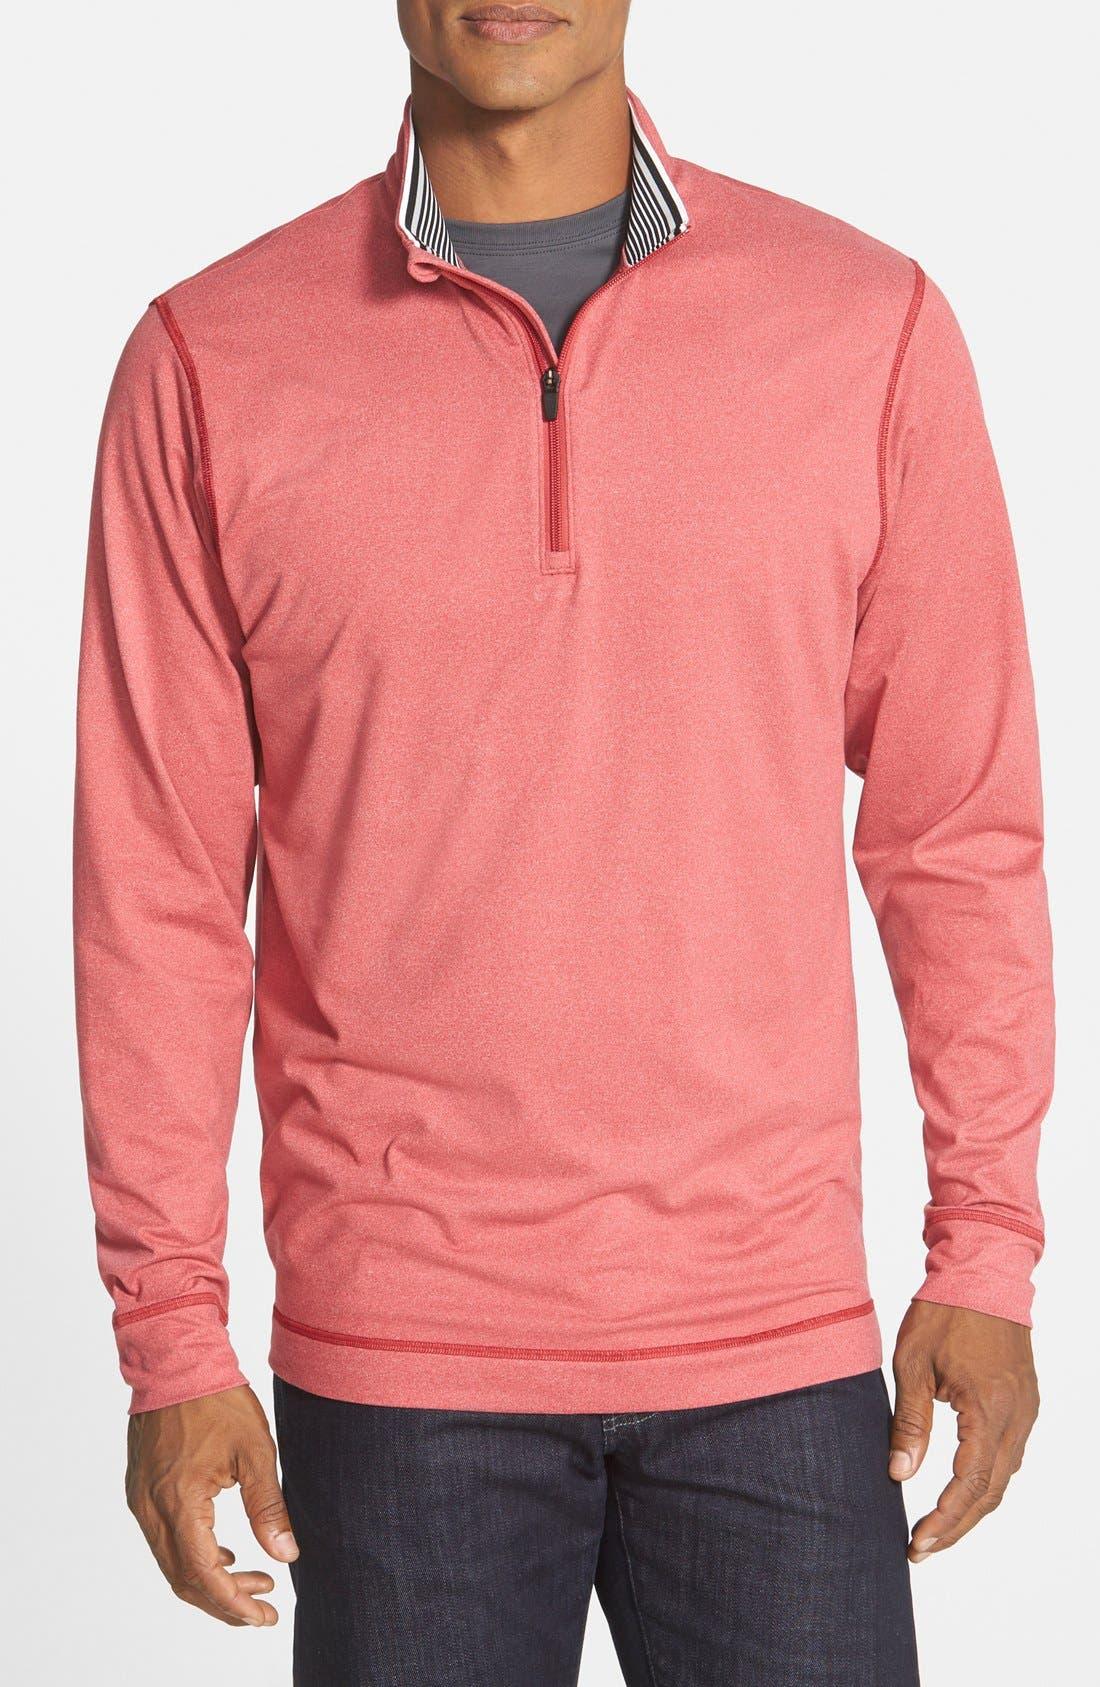 'Topspin' DryTec Half Zip Pullover,                             Main thumbnail 1, color,                             Cardinal Red Heather